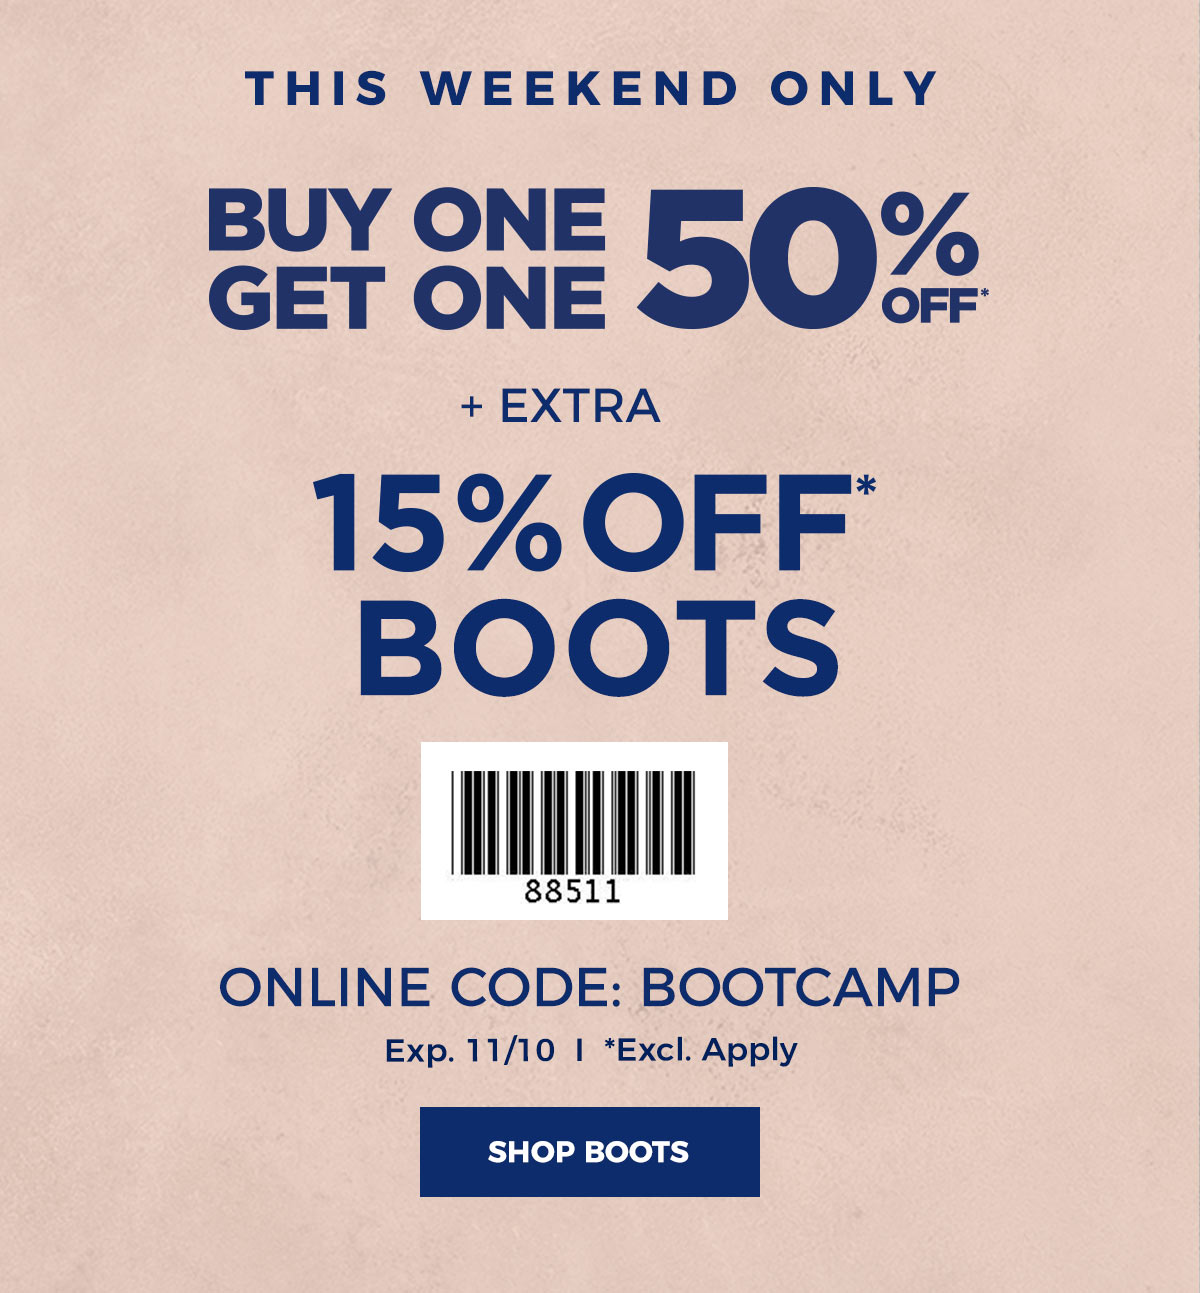 THIS WEEKEND ONLY BOGO 50% OFF* + TAKE AN EXTRA 15% OFF* BOOTS ONLINE CODE: BOOTCAMP EXP. 11/10 *EXCL. APPLY